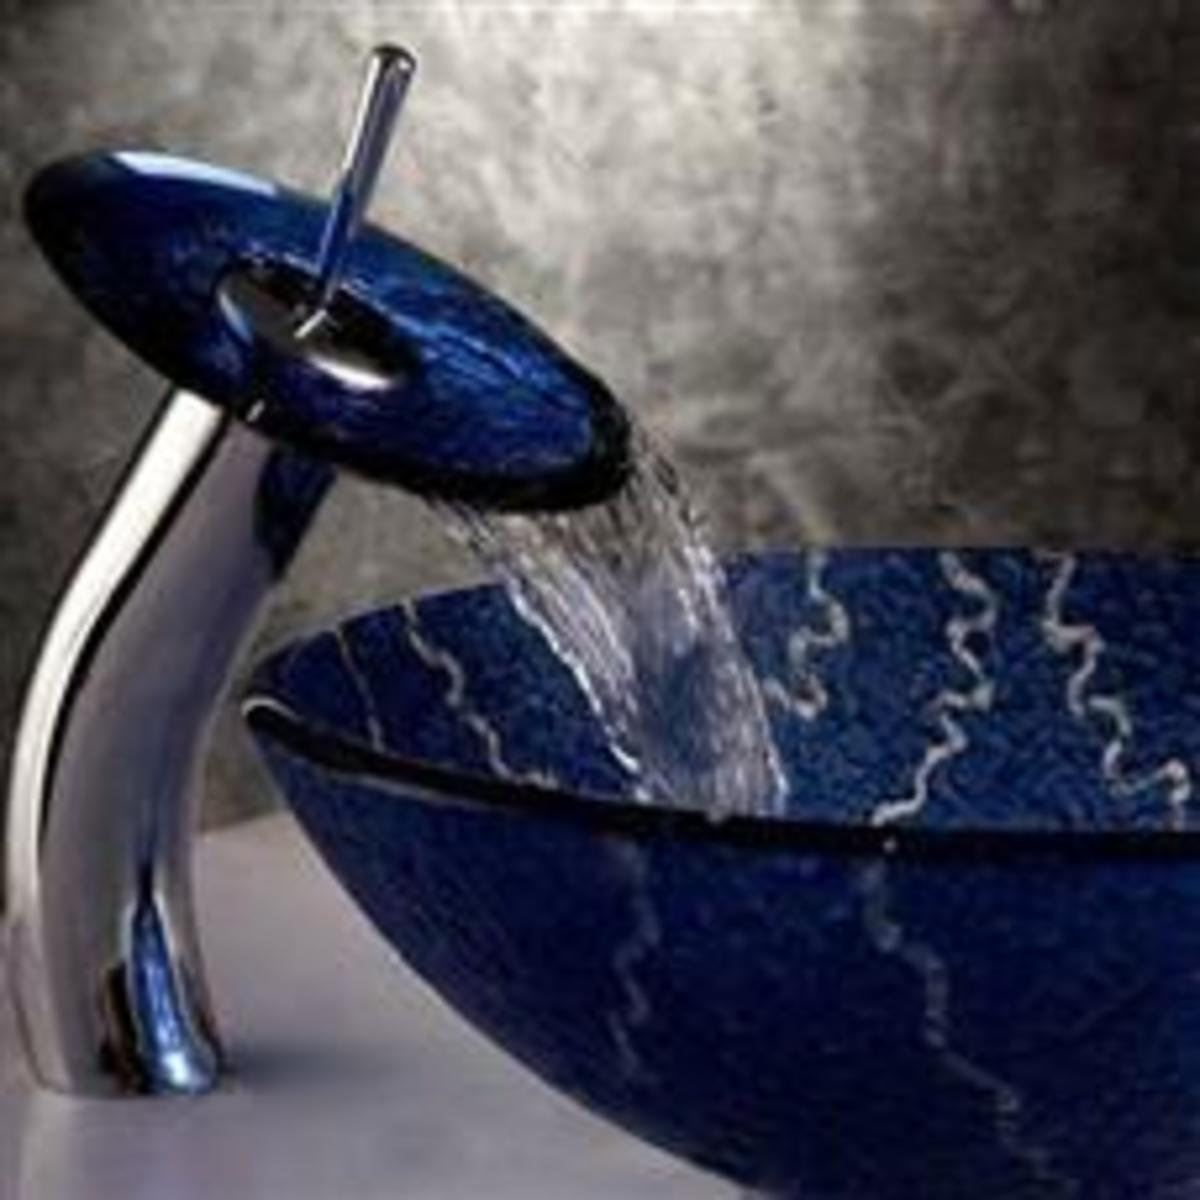 Bathroom Jewelry Faucets bathroom jewelry | luxury hardware and bathroom accessories | hubpages